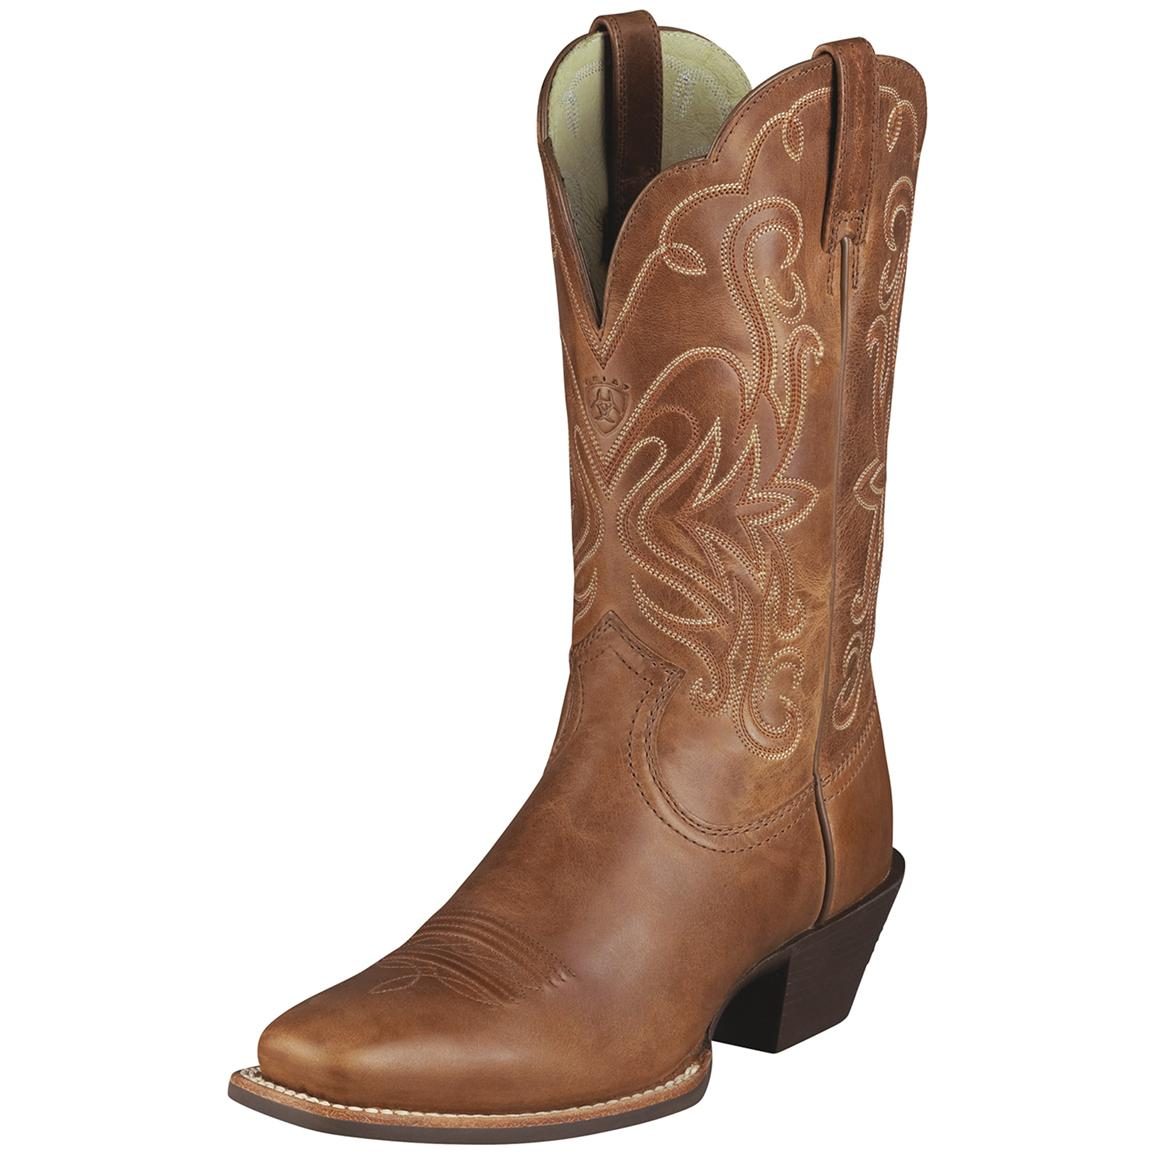 Womens Cowgirl Boots On Sale QfcxRJNk